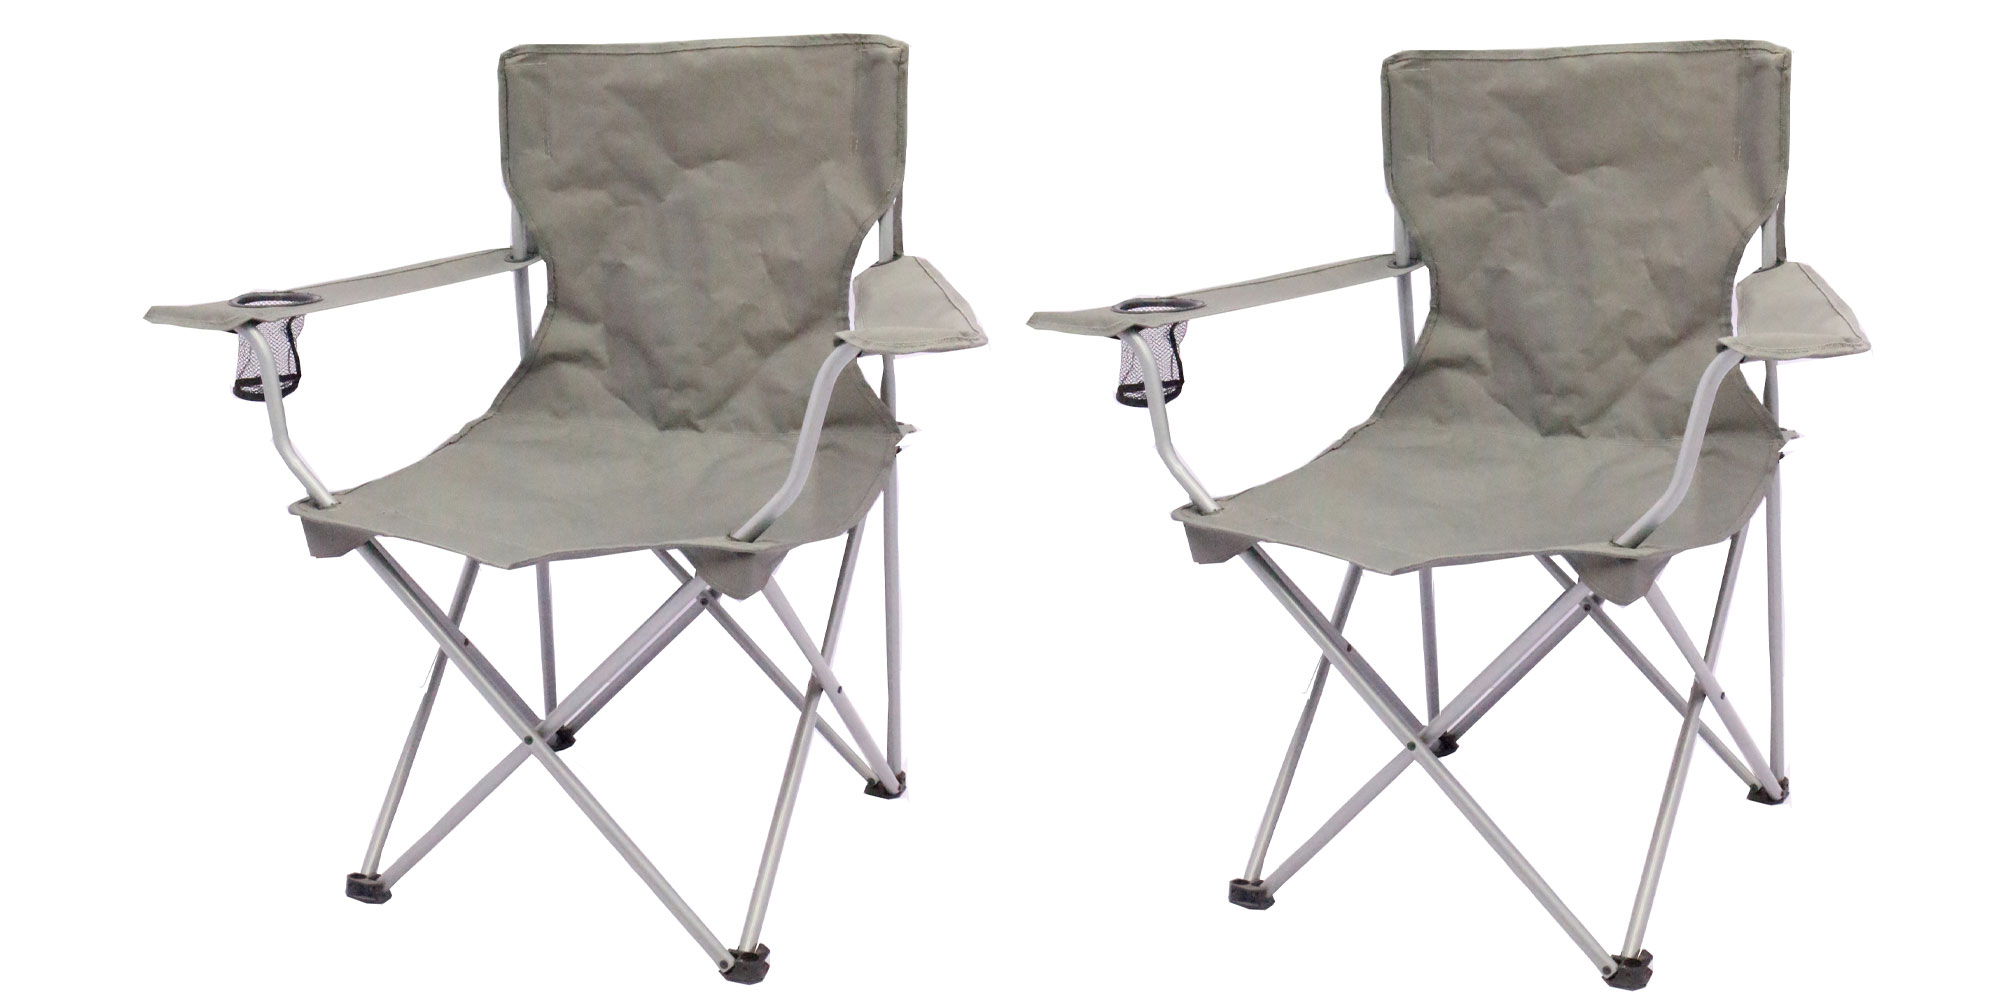 Camp Out With Two Ozark Trail Folding Lawn Chairs For 11 At